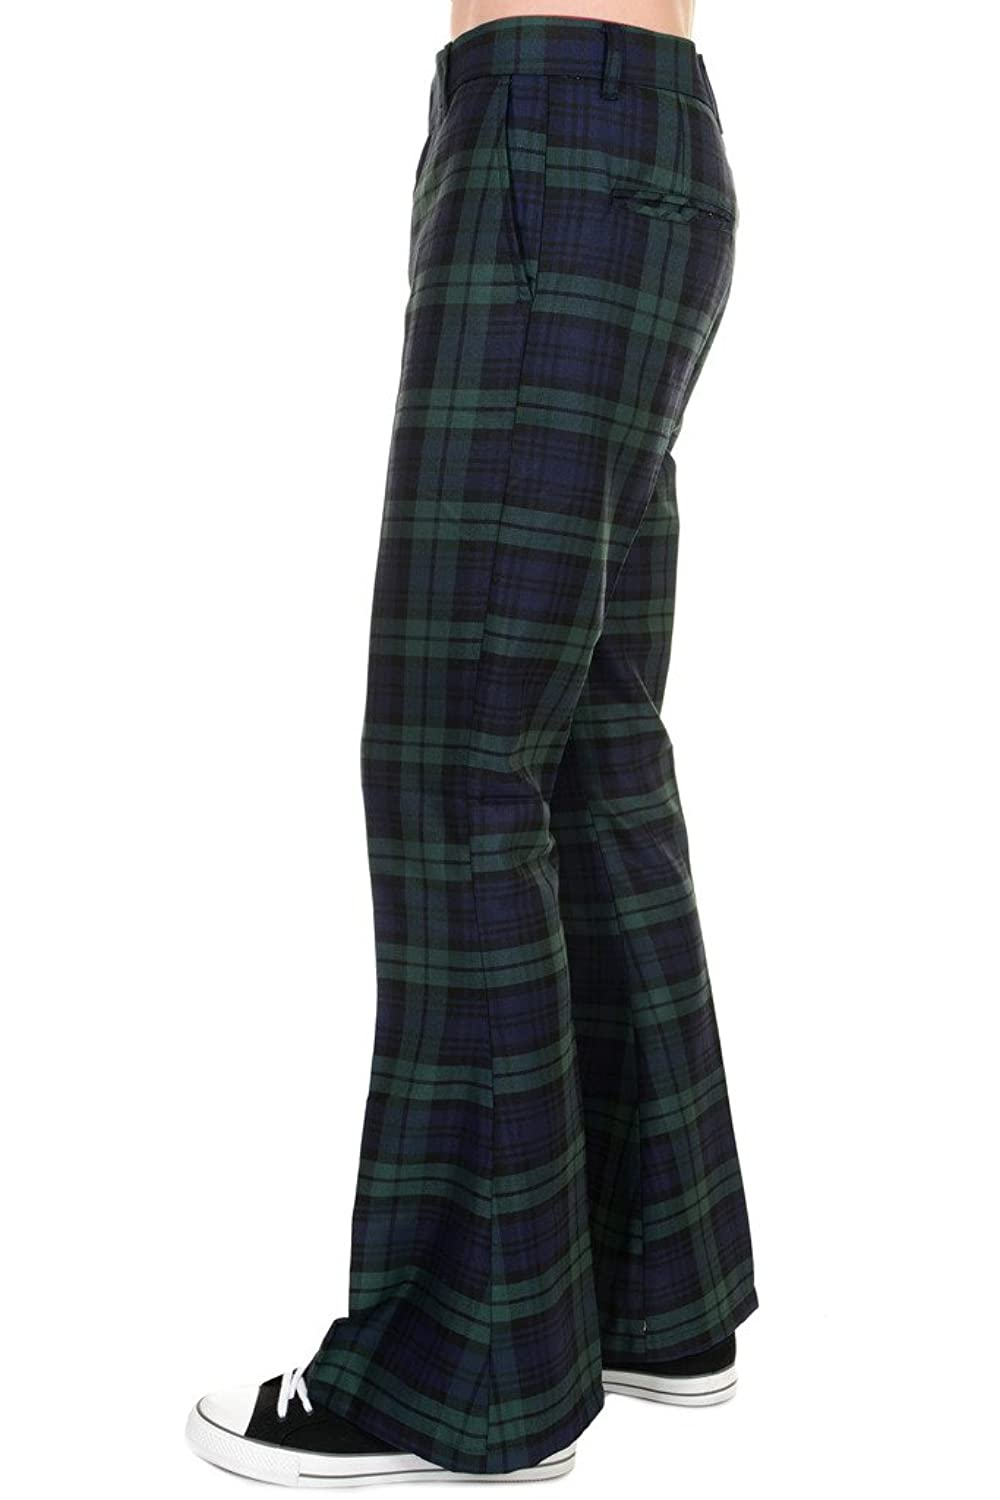 1960s Men's Clothing, 70s Men's Fashion Mens Run & Fly 60s 70s Vintage Blackwatch Tartan Plaid Bell Bottom Trousers $47.95 AT vintagedancer.com